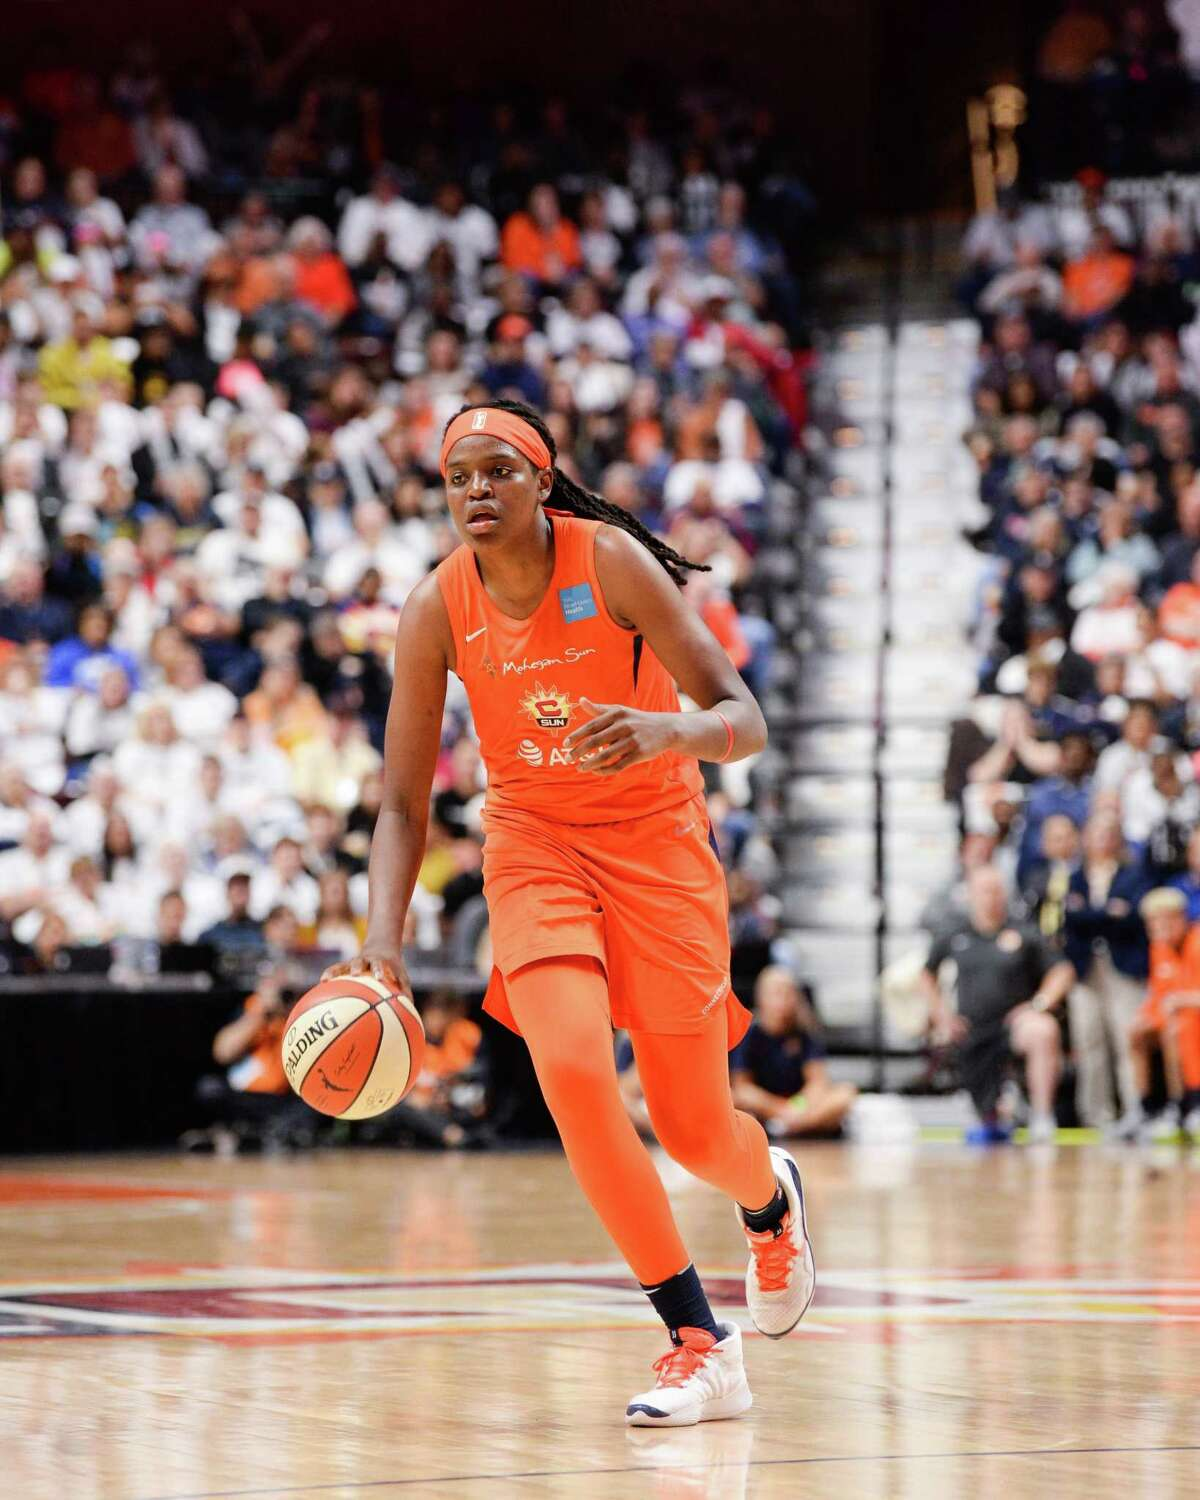 Jonquel Jones of the Connecticut Sun brings the ball up court against the Washington Mystics in the fourth quarter of Game 3 of the WNBA Finals at Mohegan Sun Arena on Oct. 6 in Uncasville. Jones will skip the upcoming WNBA season due to coronavirus concerns.